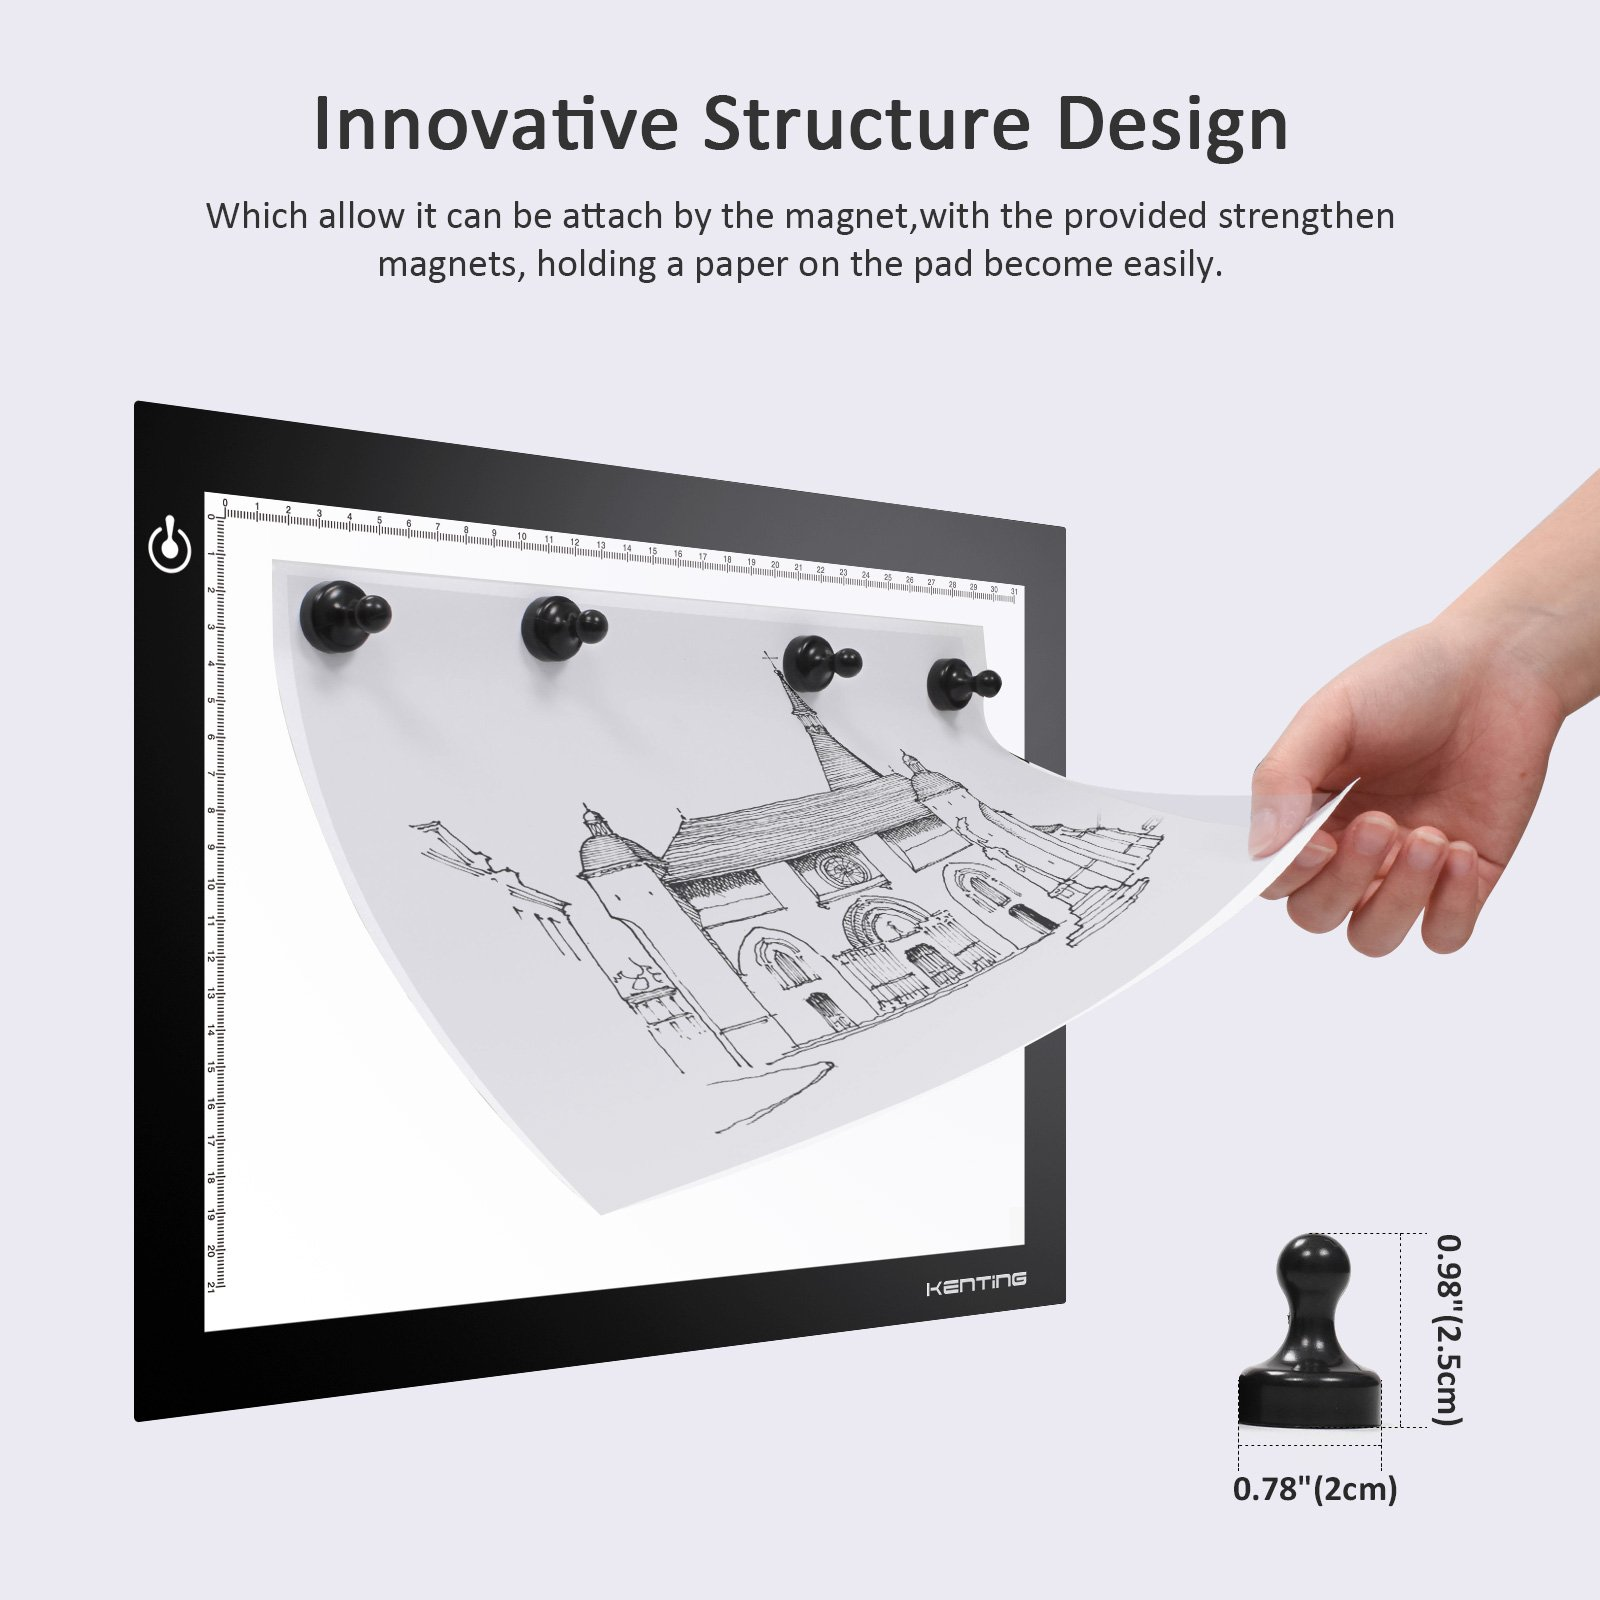 Kenting Magnetic K4M Portable LED Tracing Light Pad Light Box Light Table USB Powered Drawing Board Tattoo Pad for Animation, Sketching, Designing, Stenciling X-ray Viewing